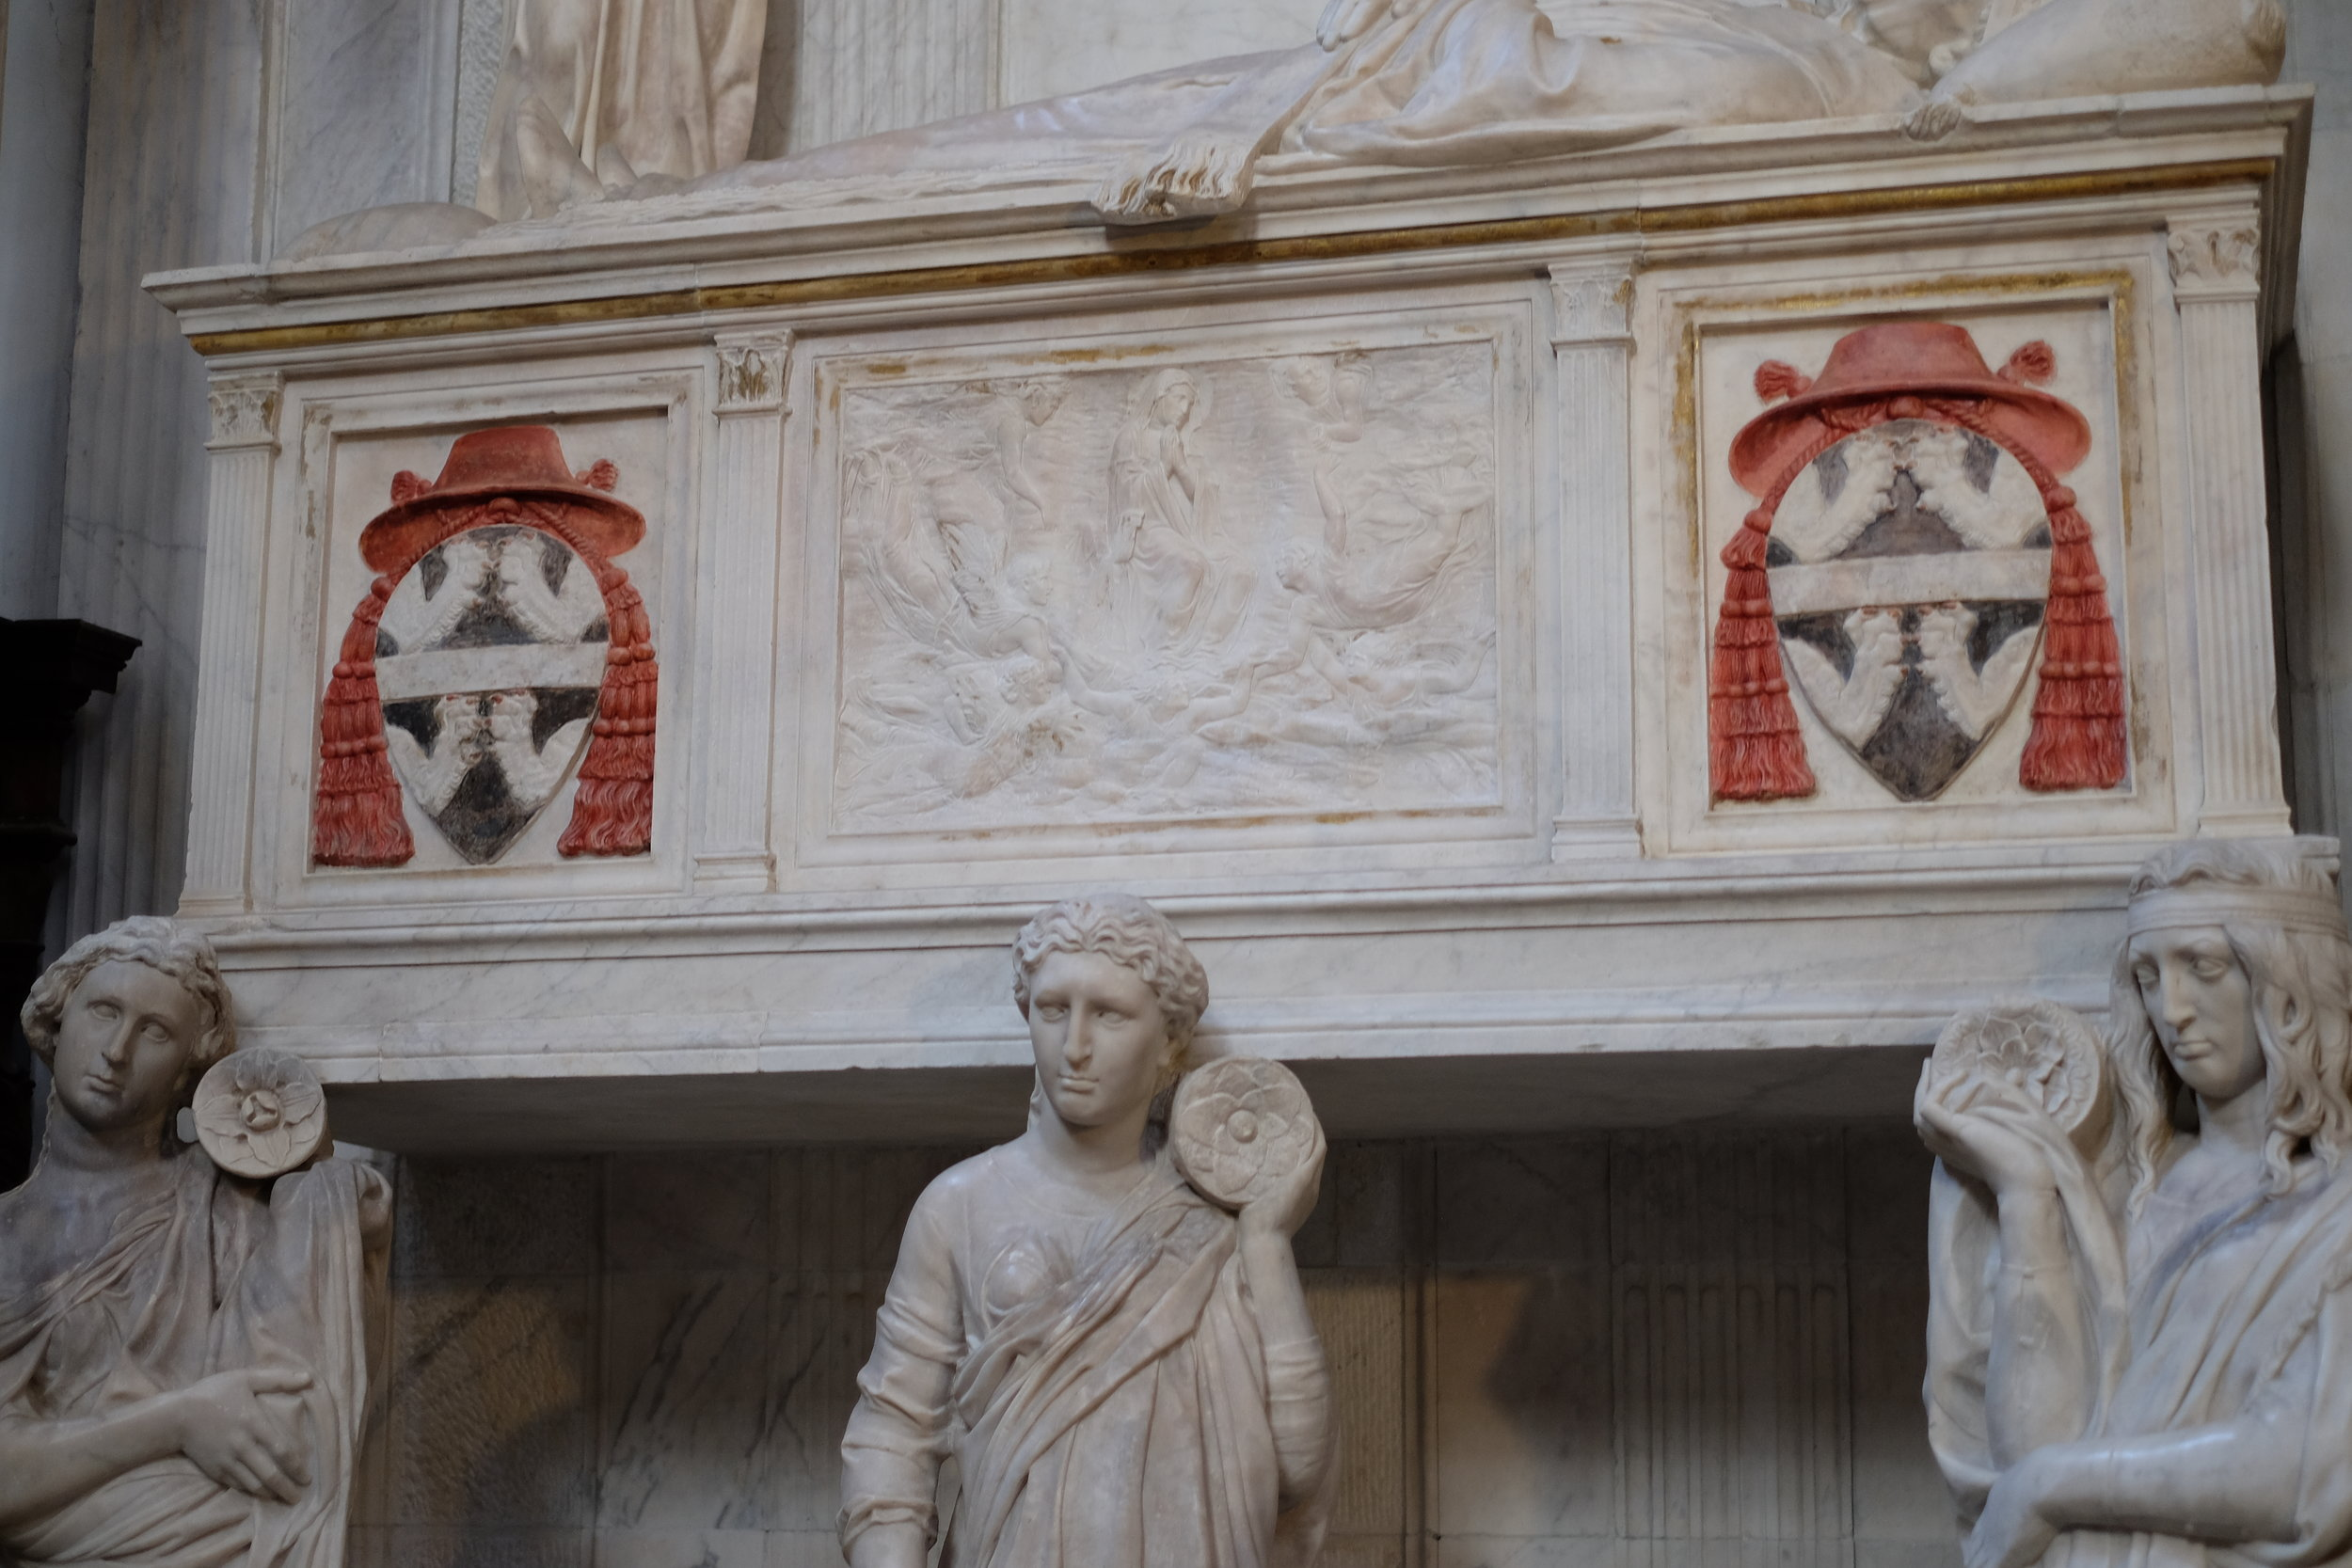 Details of the relief (at the centre) attributed to Donatello.